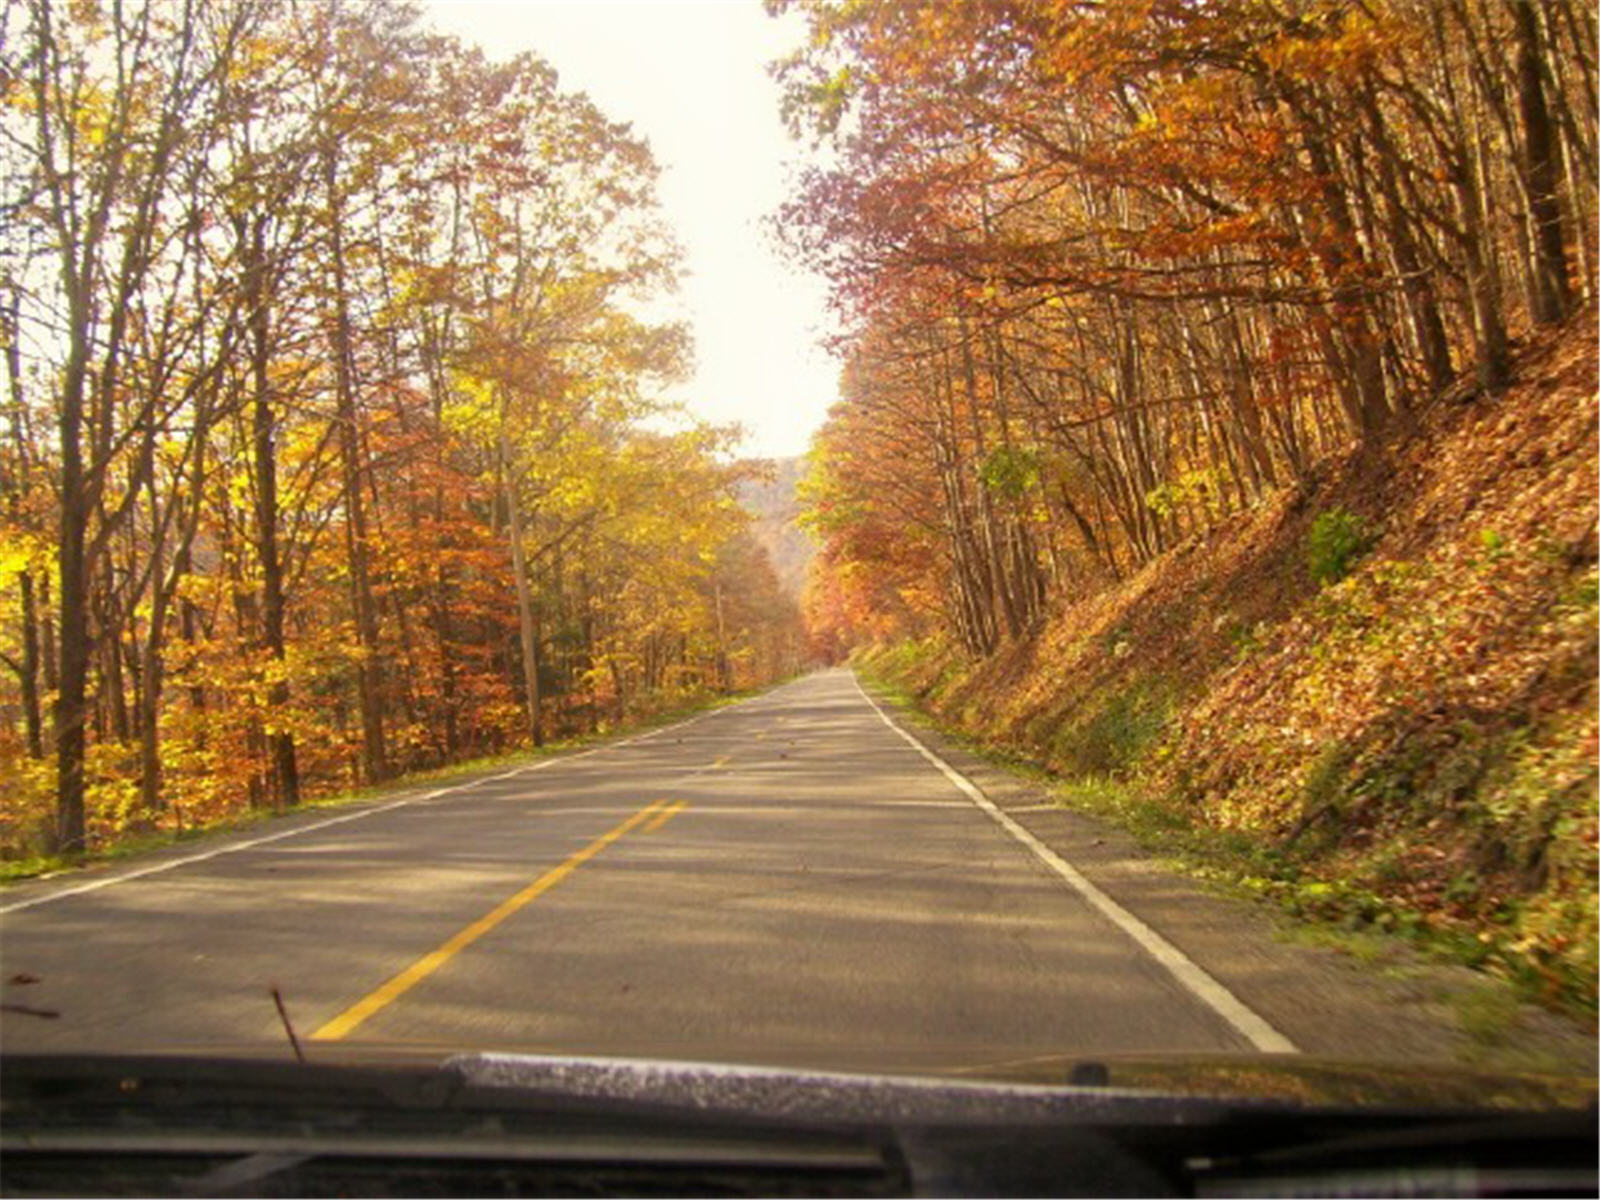 God bless two lane roads and fall foilag photo